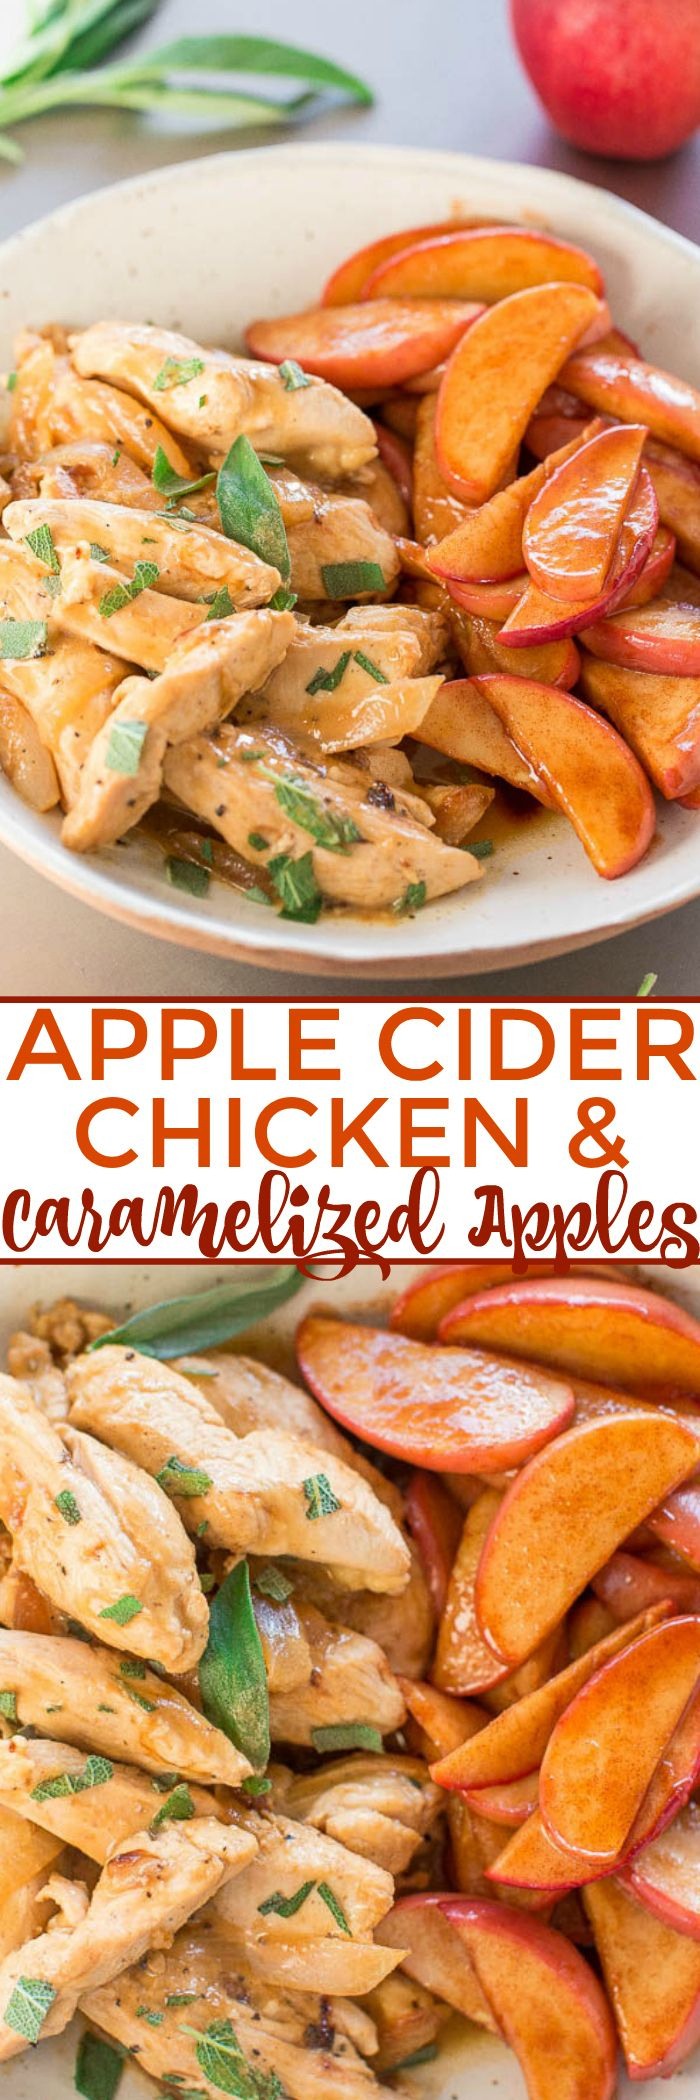 Apple Cider Chicken with Caramelized Apples - The flavors of FALL in an EASY dish ready in 30 MINUTES!! Chicken simmered in apple cider and Dijon is so rich-tasting along with juicy, caramely apples!!